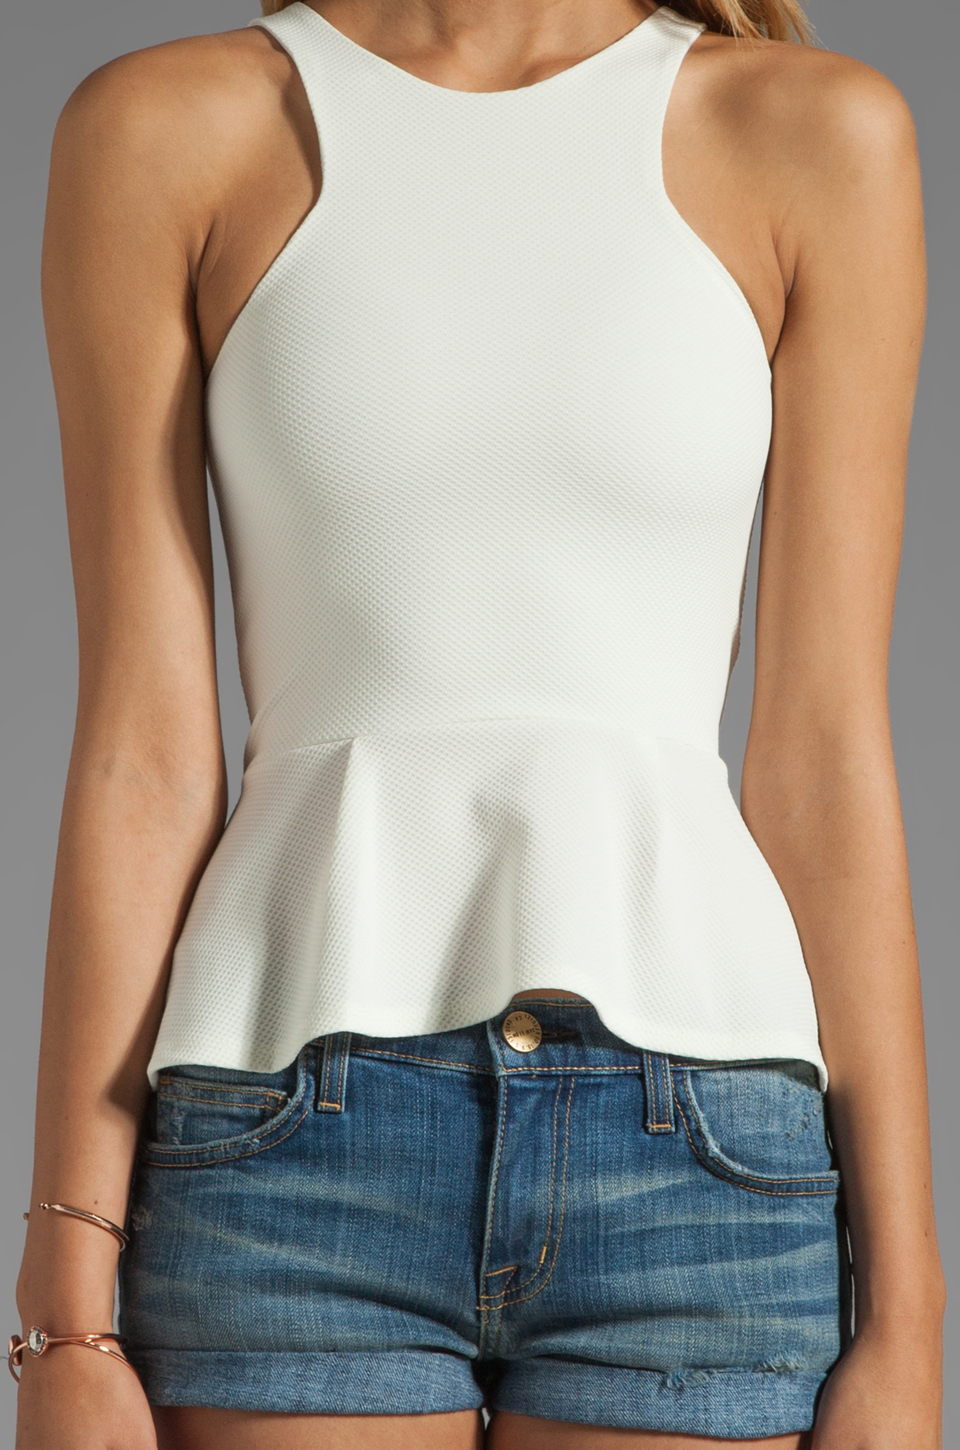 BEC&BRIDGE Estella Peplum Top in Ivory